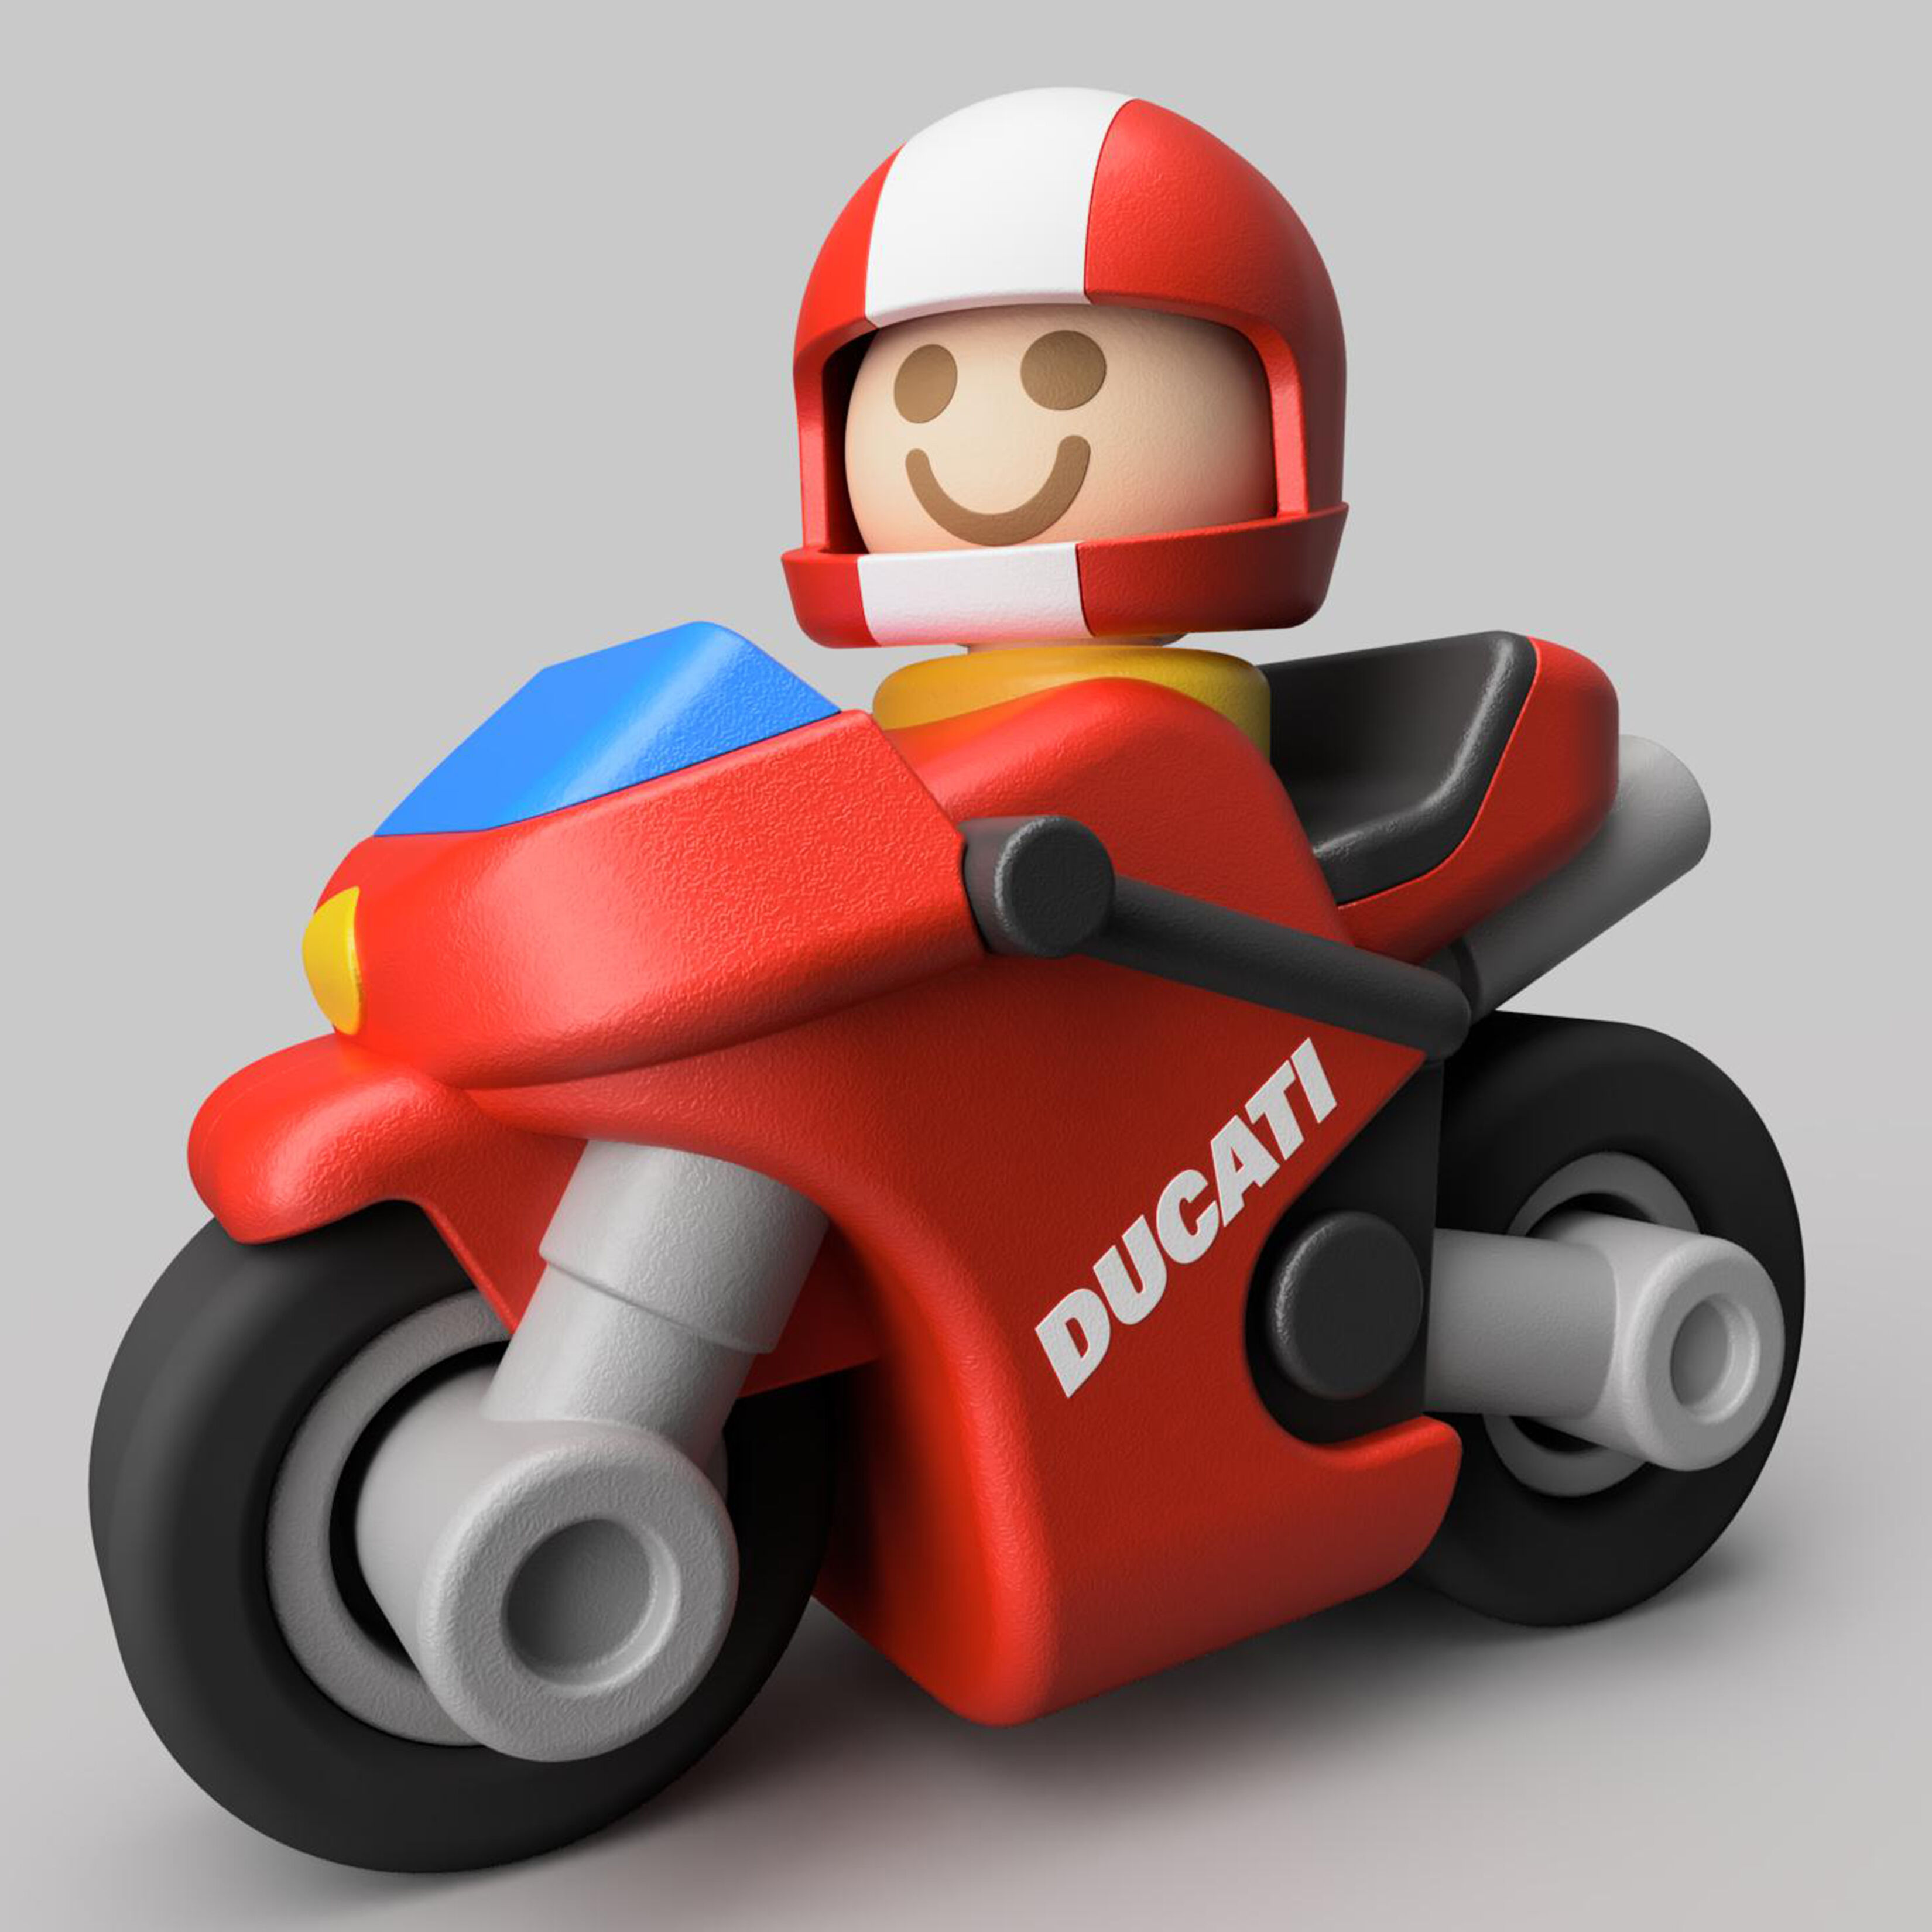 Toy-ducati-2020-jun-04-12-01-58pm-000-customizedview14694227662-3500-3500